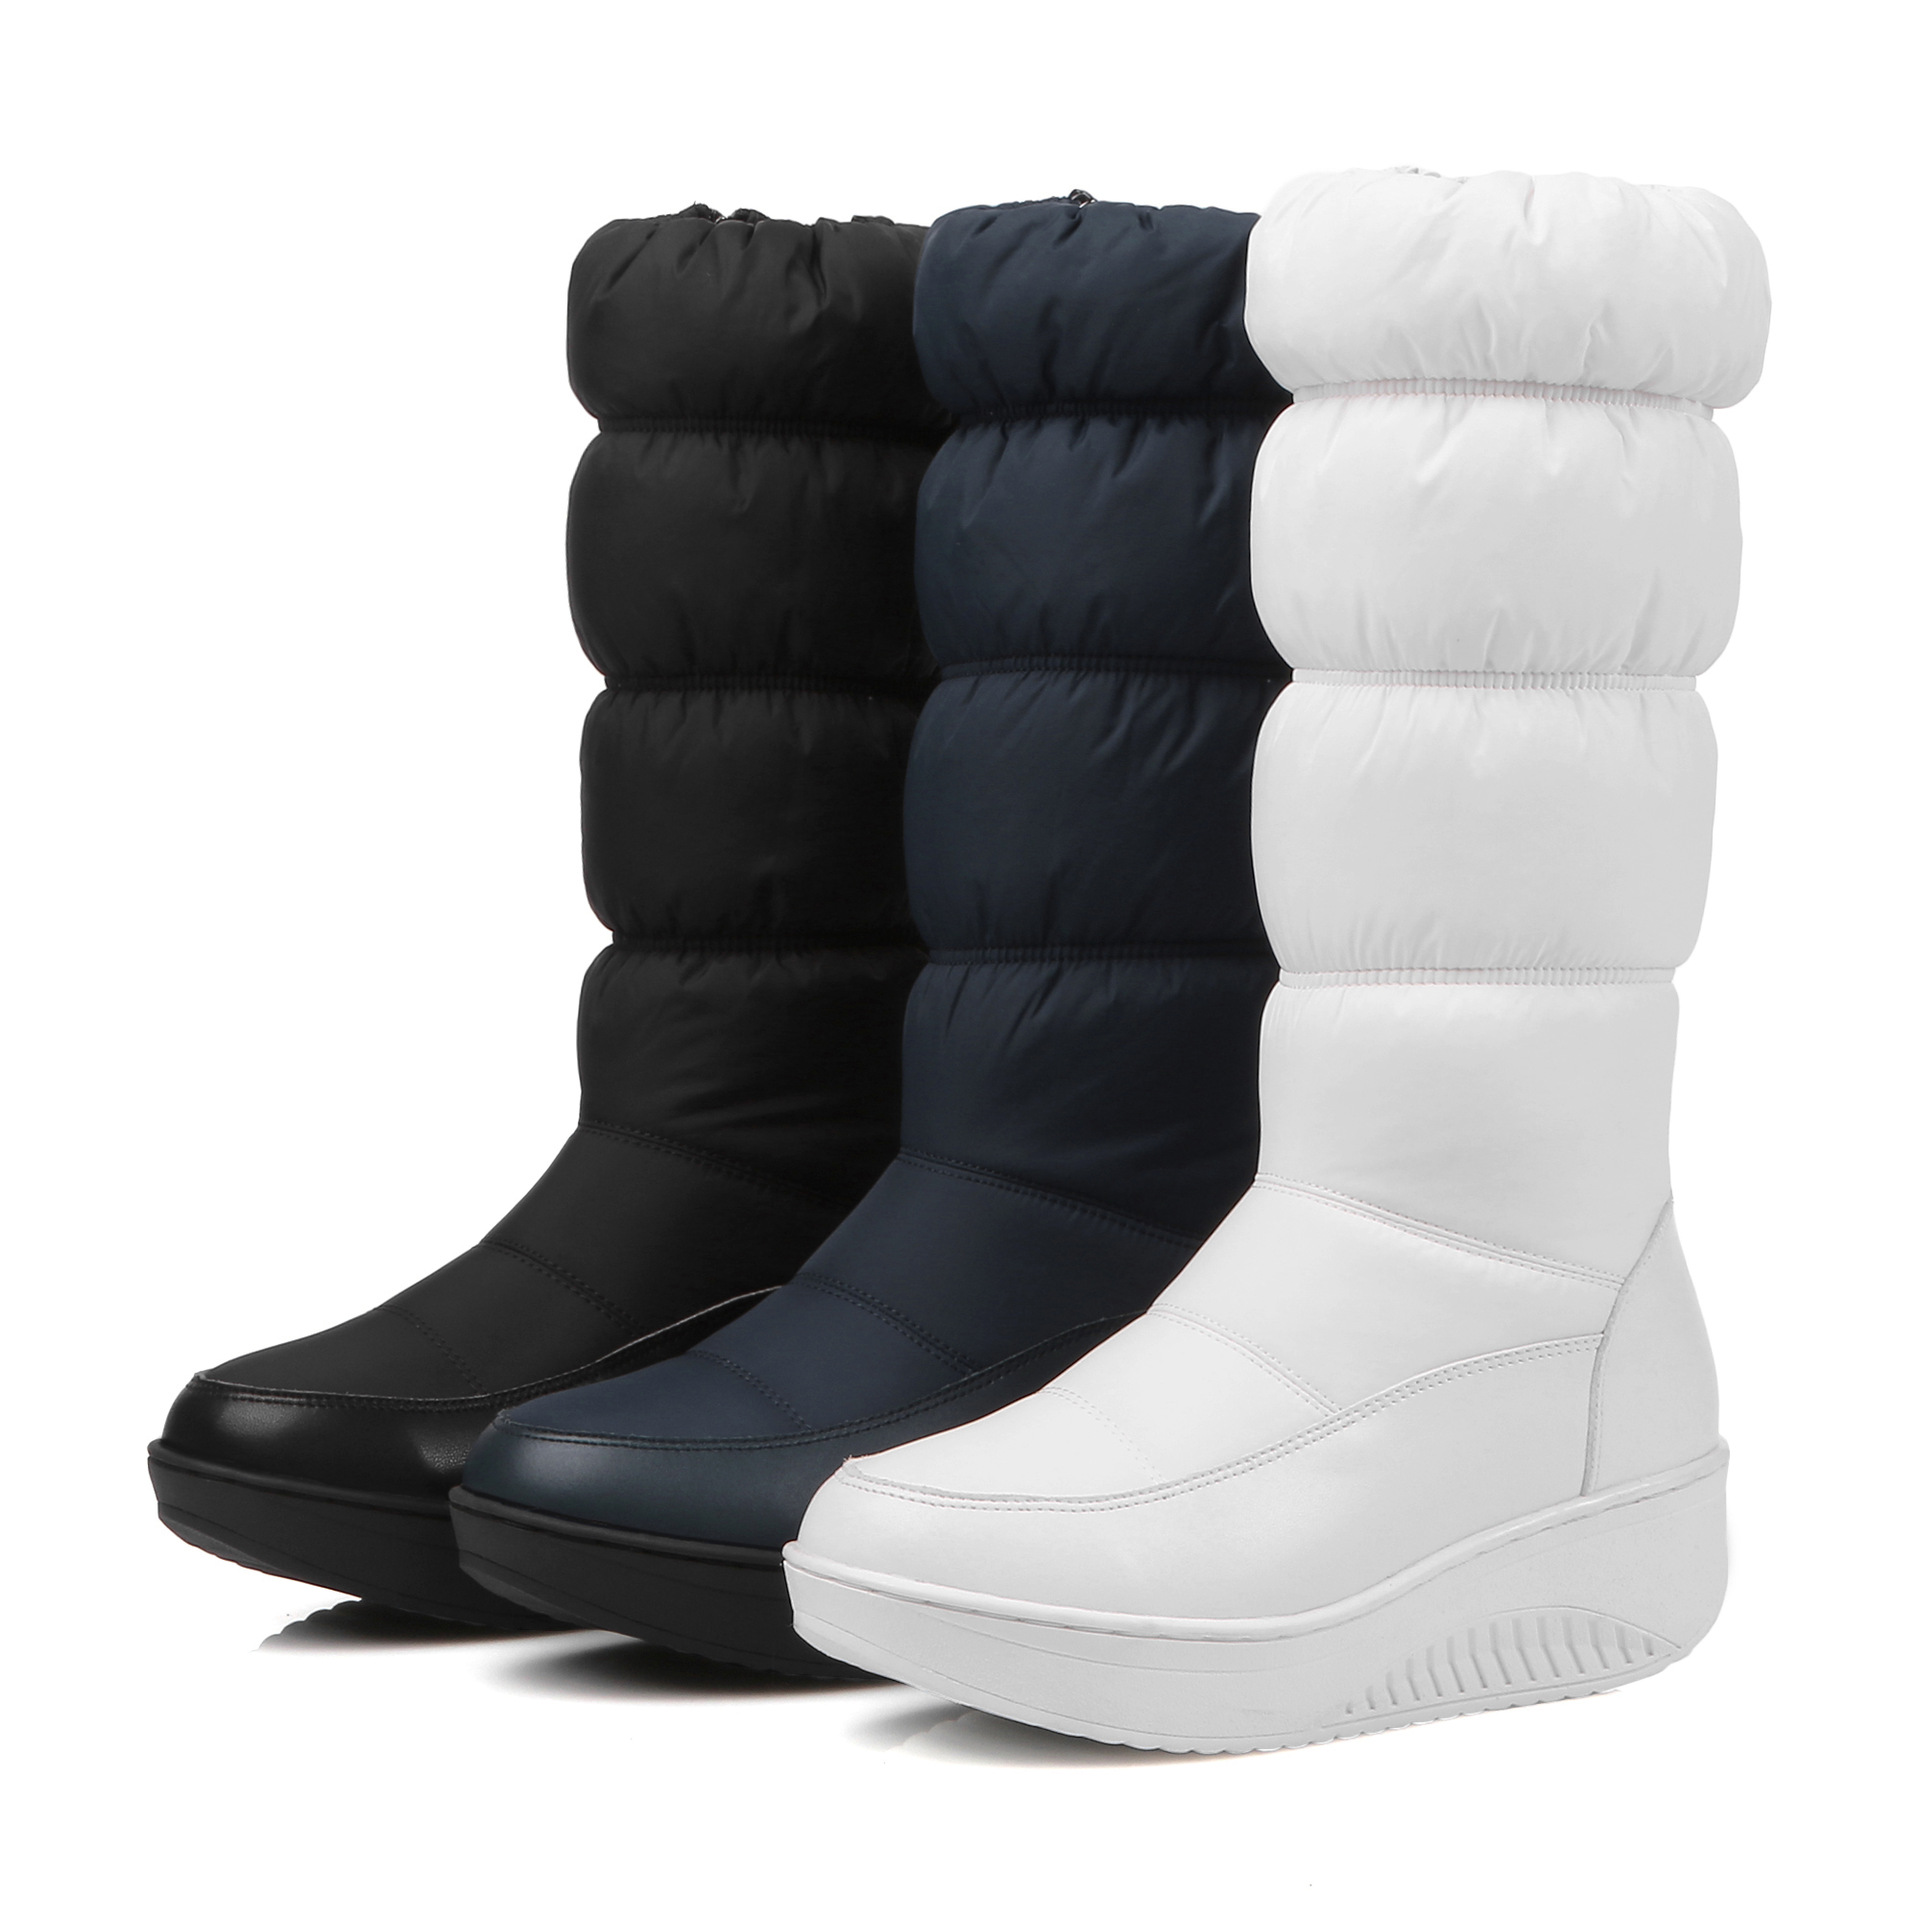 2018 winter new fashion measuring zipper down snow boots casual in the boots student cotton boots women warm boots shoes 2018 autumn and winter new leather women s cotton shoes korean rabbit hair fashion snow boots in the tube warm women s boots